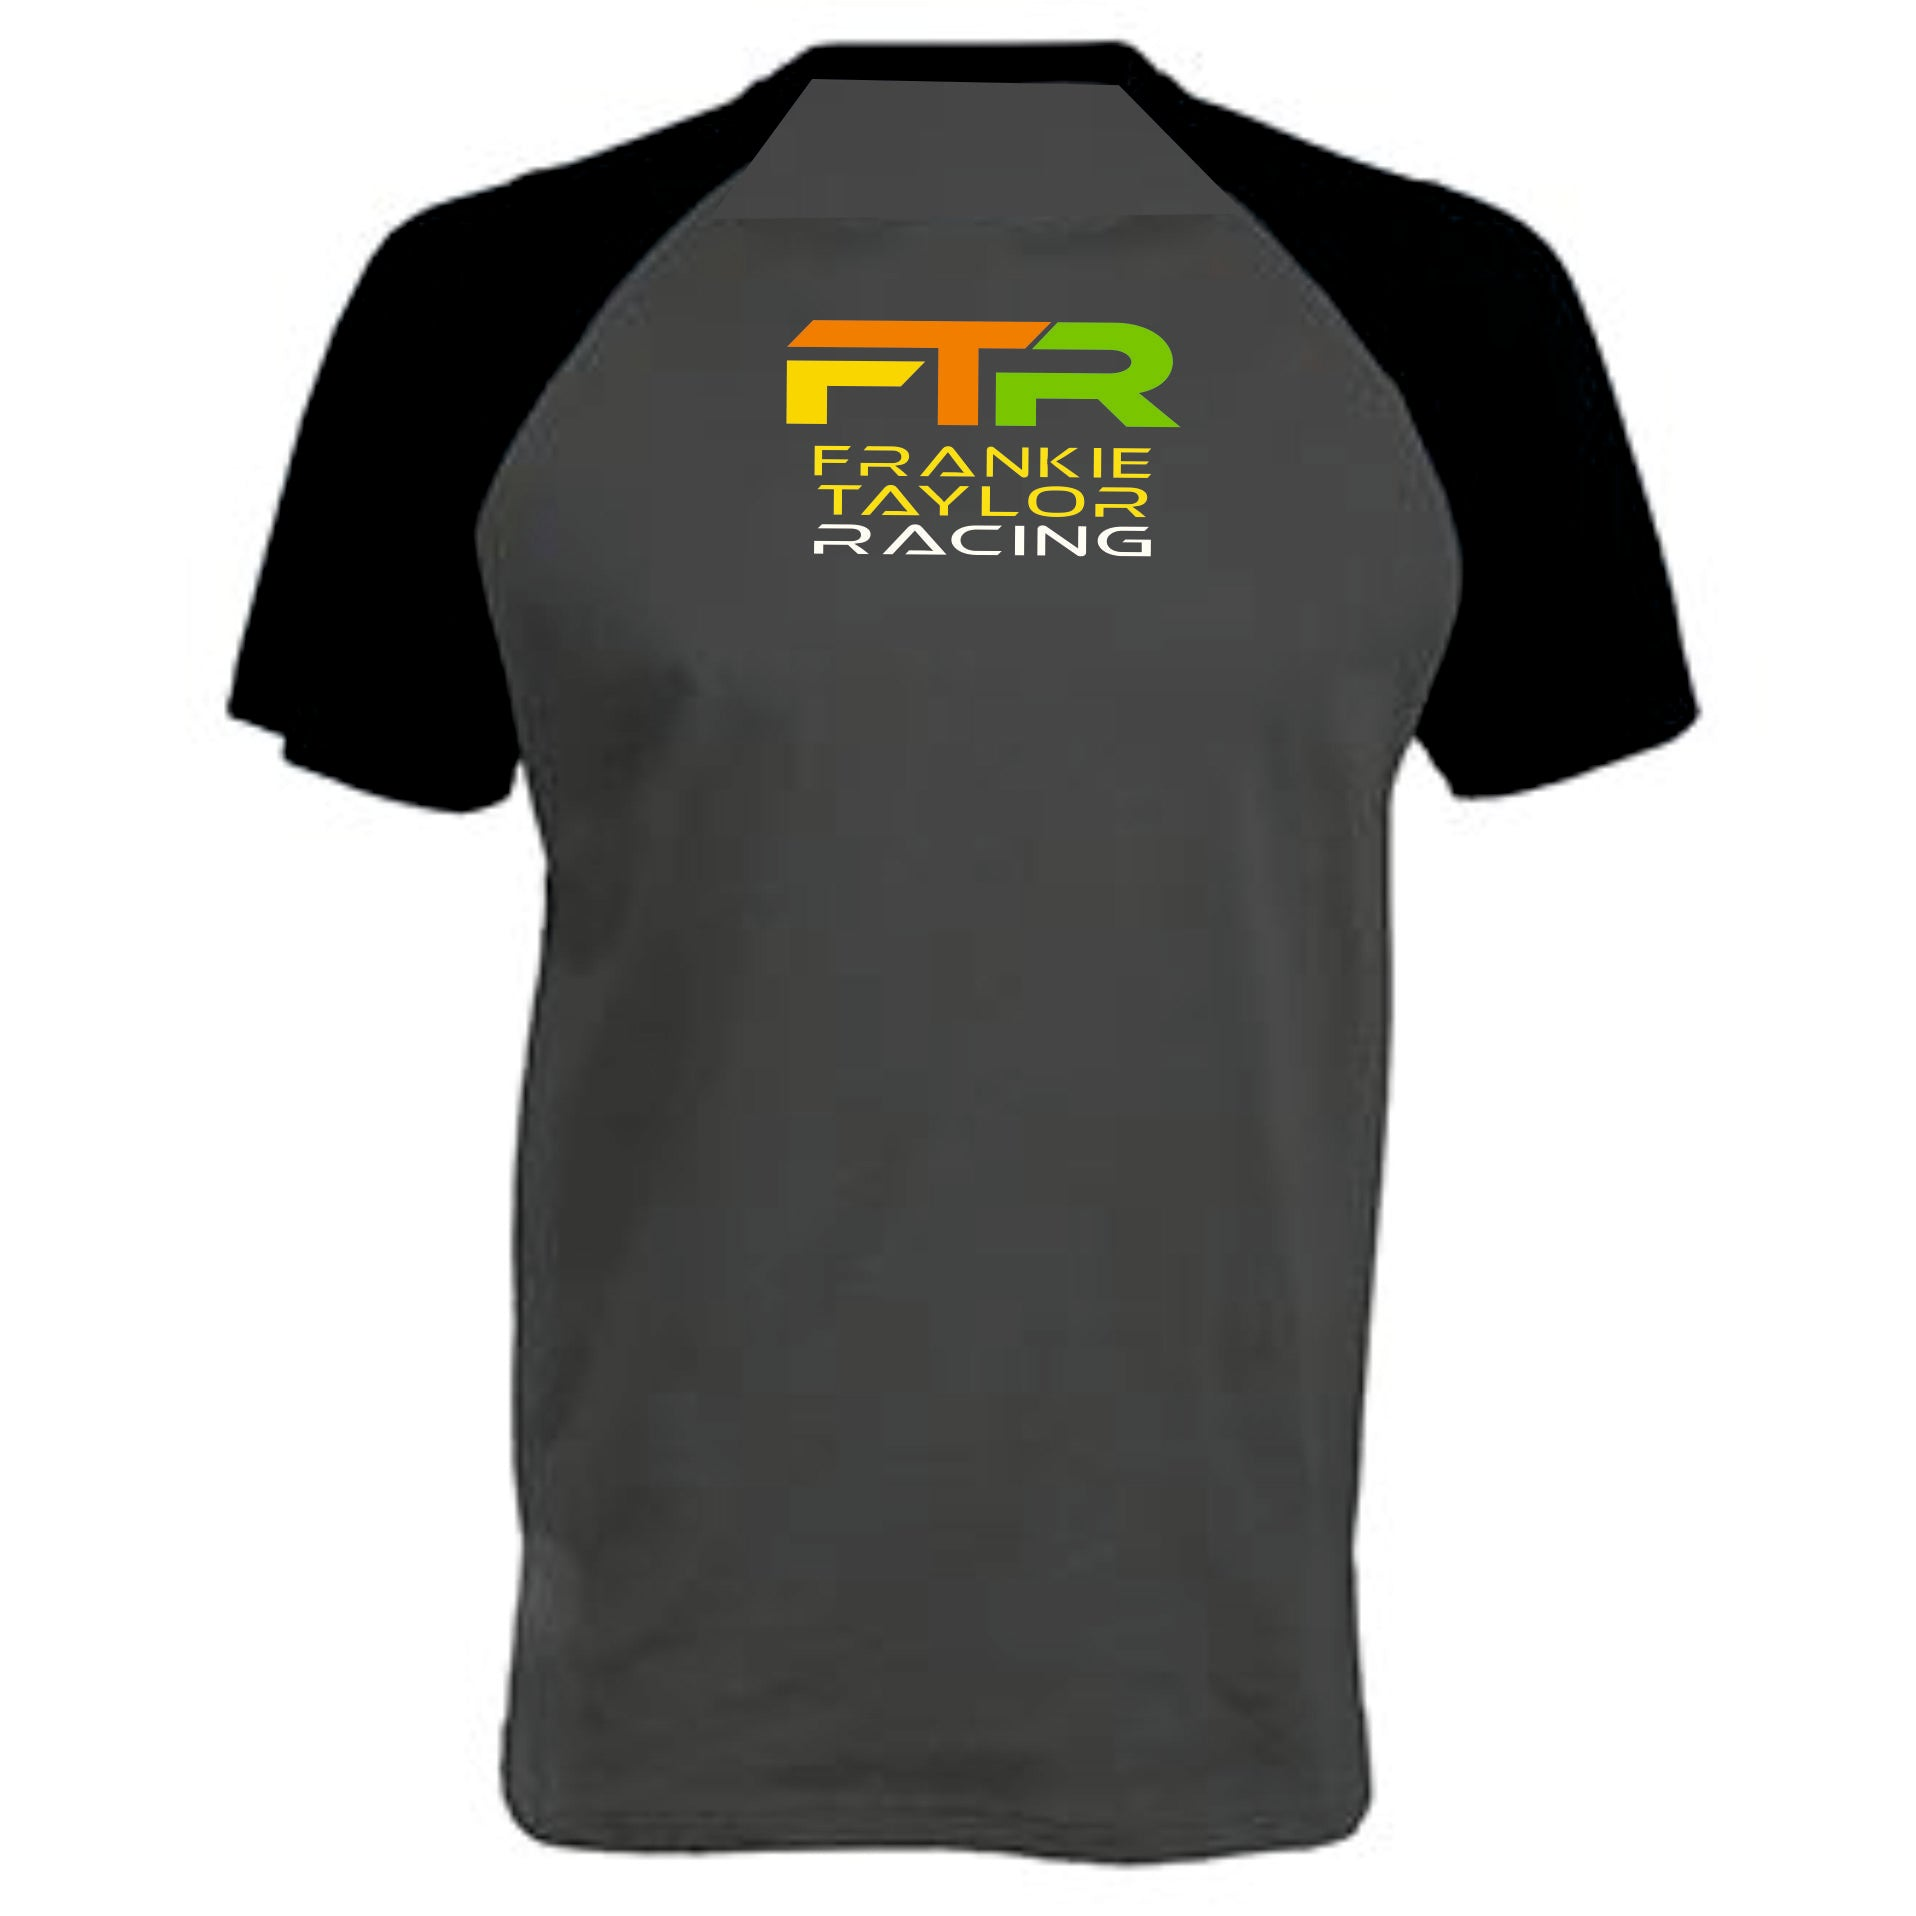 Frankie Taylor Racing Printed Baseball T-Shirt